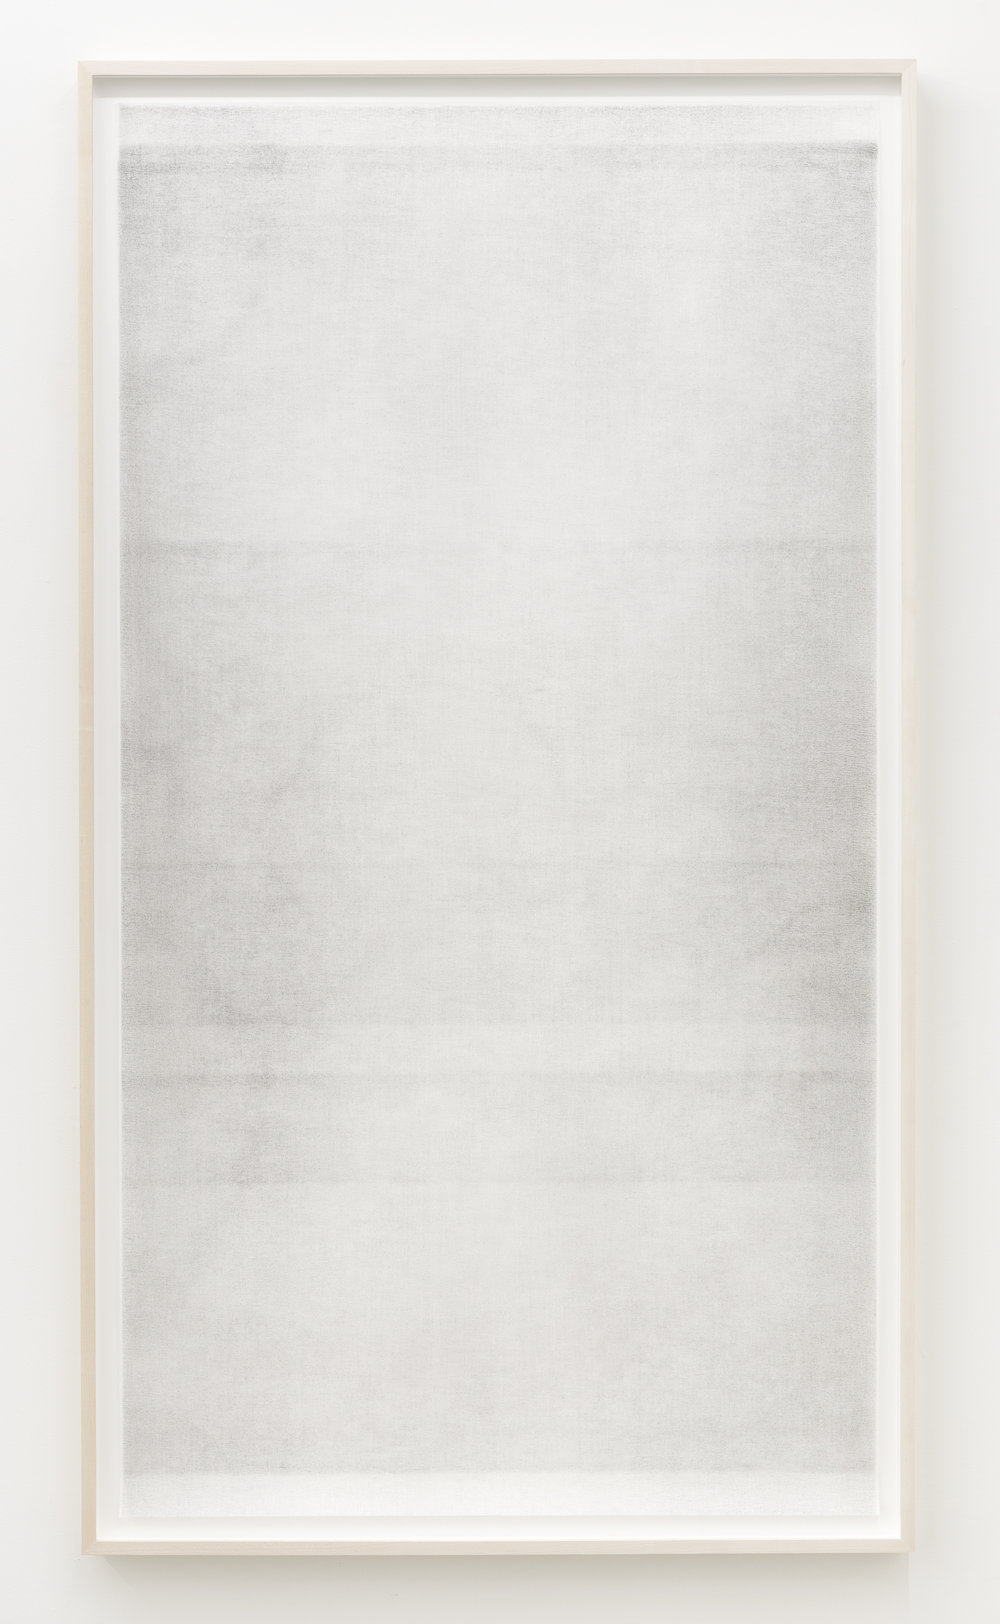 "Jim Verburg,  Untitled 35 (when it settles #5  from the series  A Certain Silence ), 2017, oil, graphite and charcoal on tarlatan, 59"" x 35"" (150 x 89 cm)"